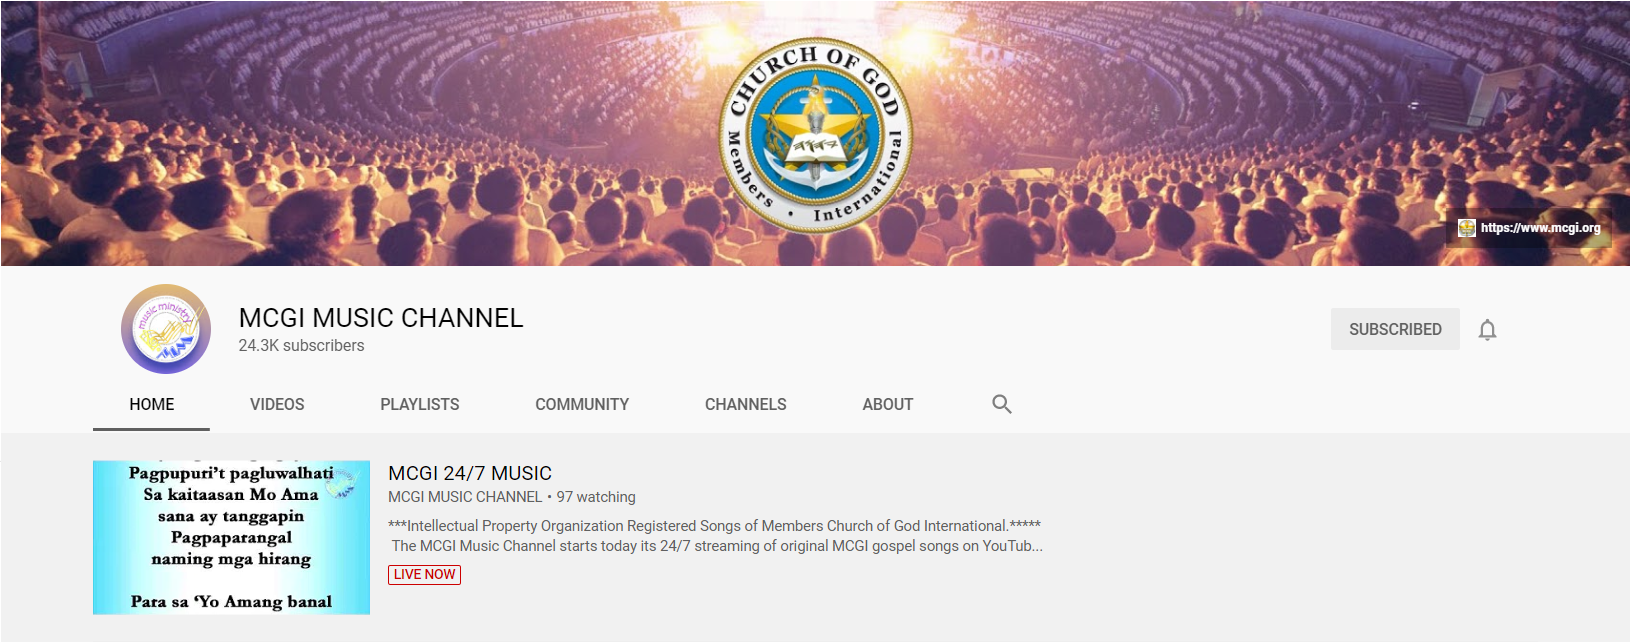 mcgi-music-channel-24-hour-streaming-of-praise-songs